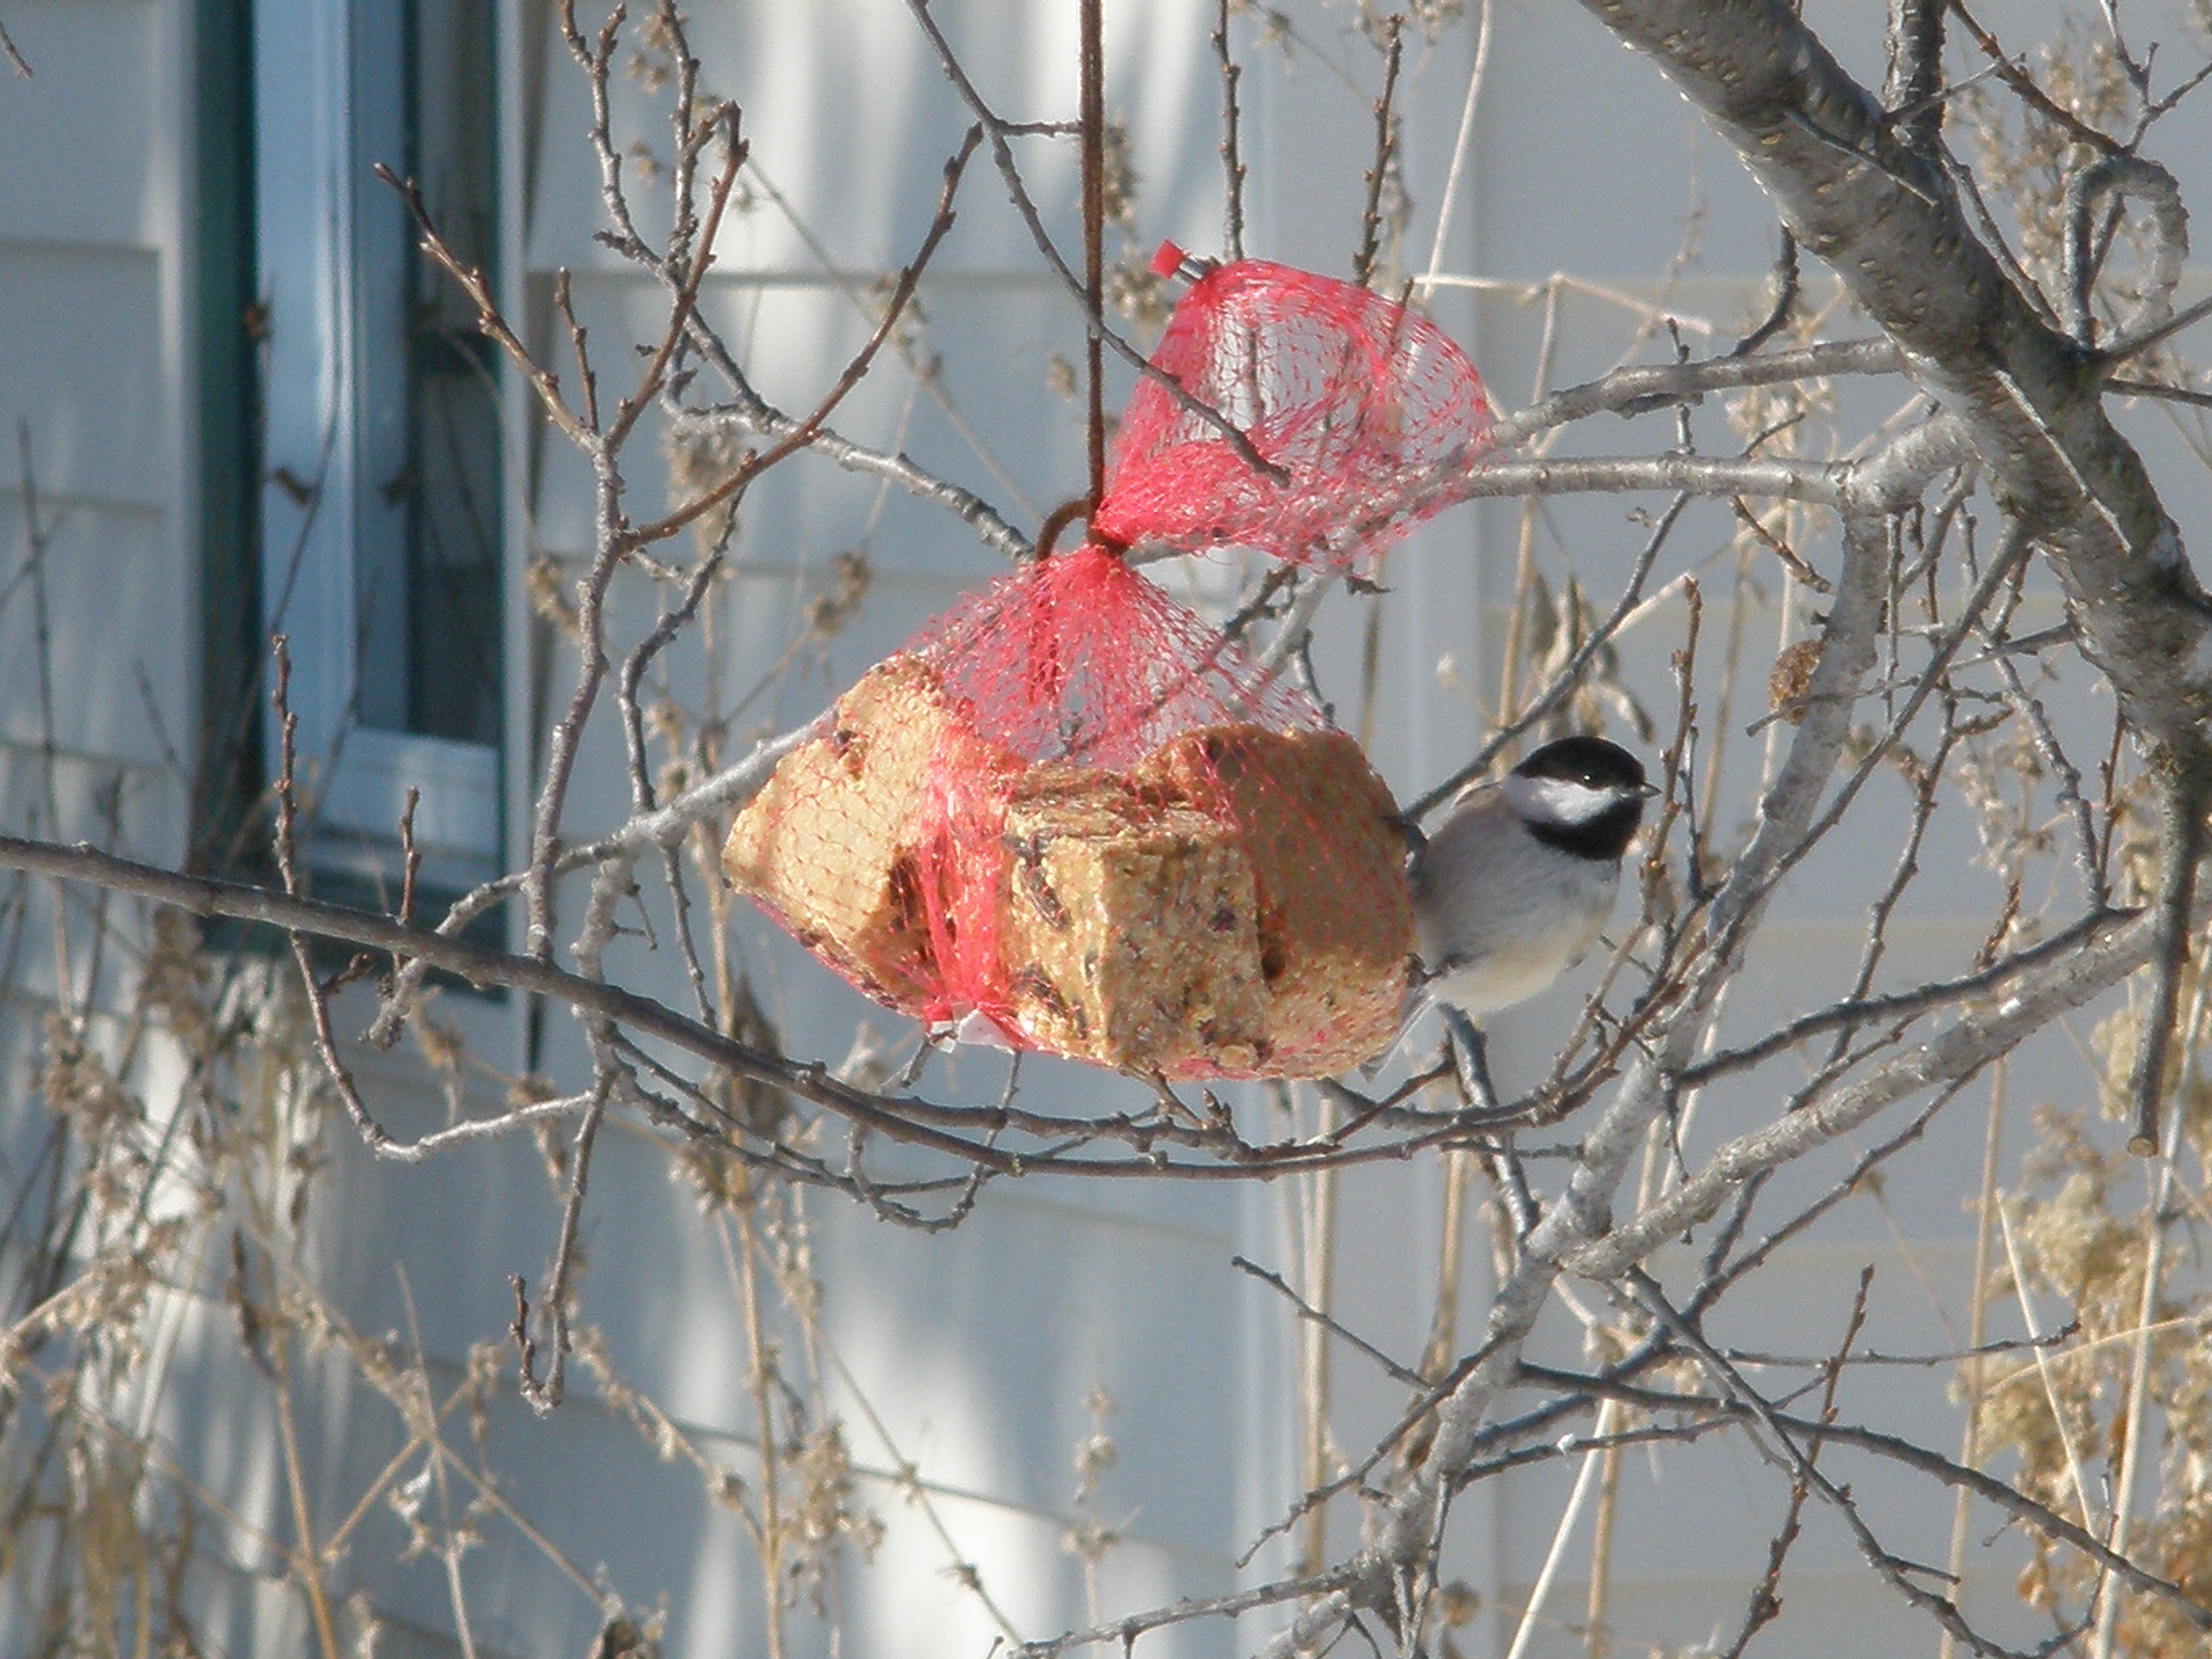 Black Capped Chickadee on Feeder